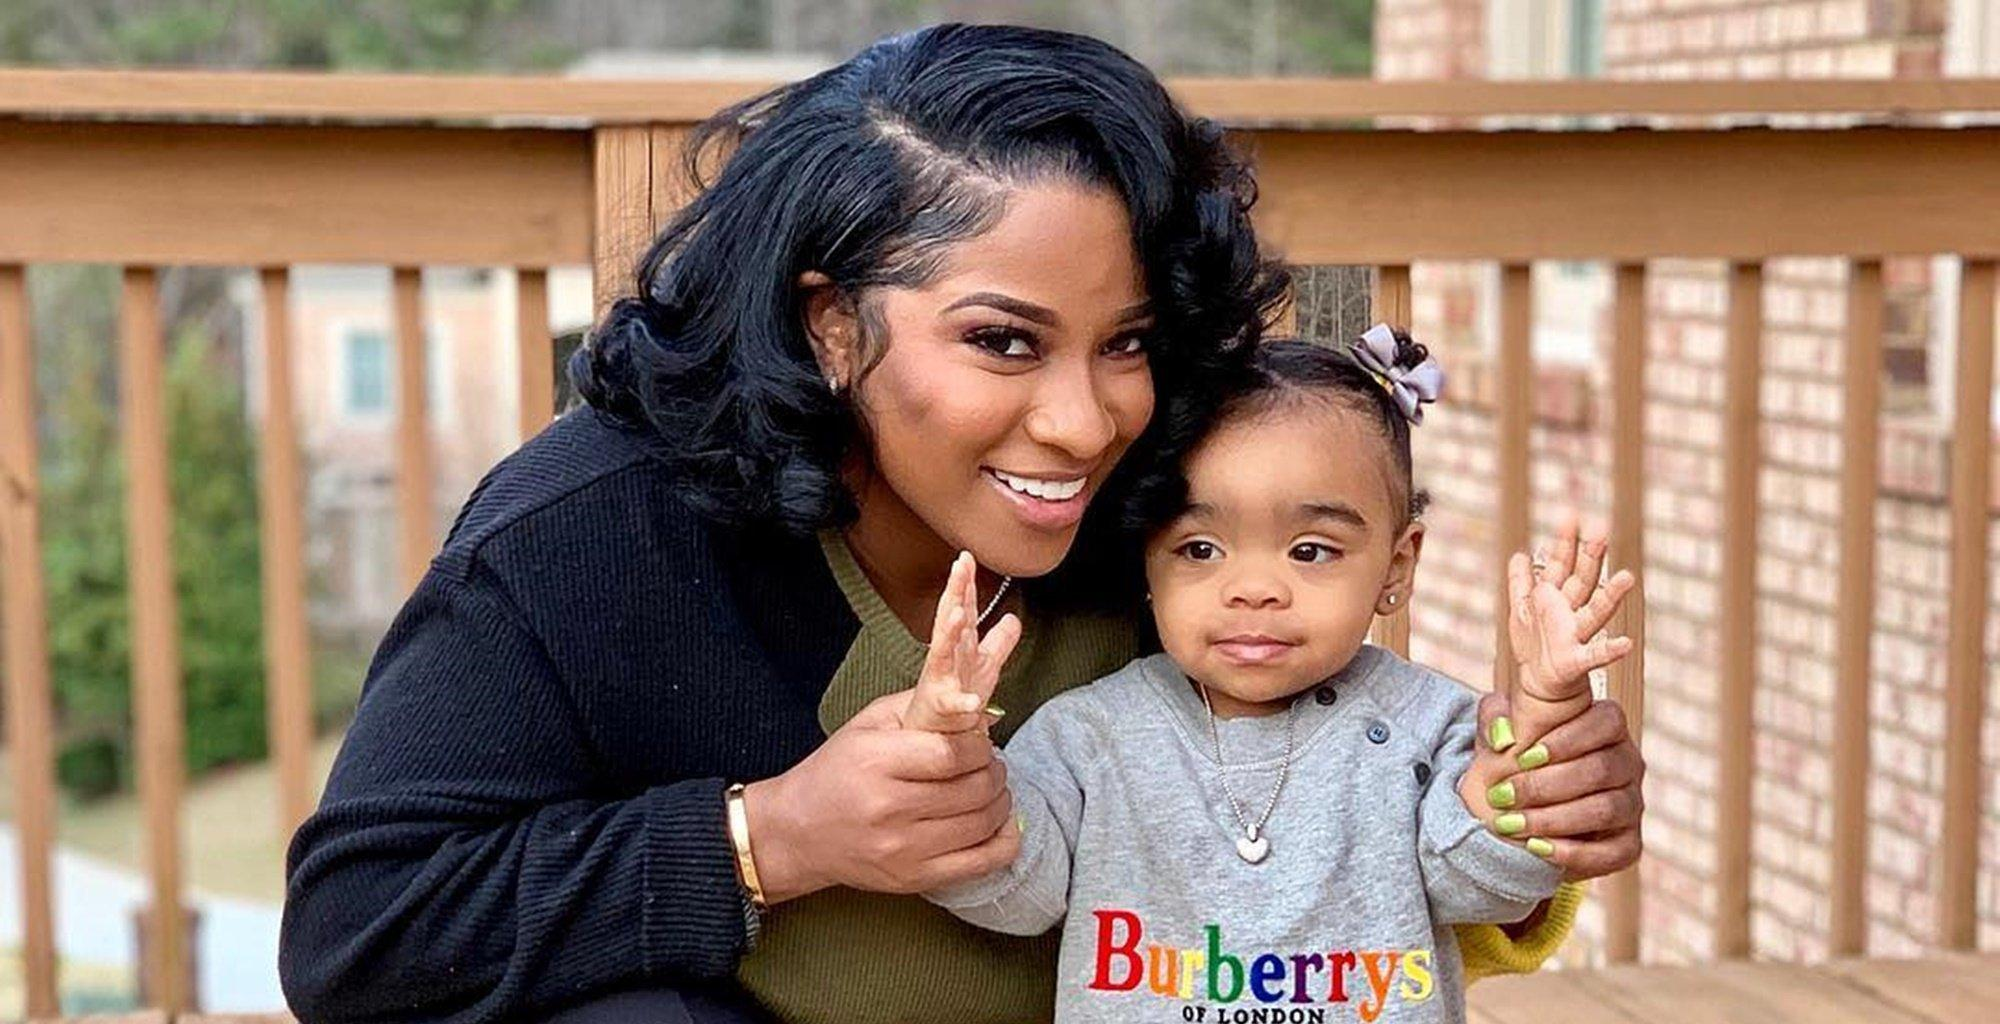 Toya Johnson Reveals Her Brother To Fans - See The Photos